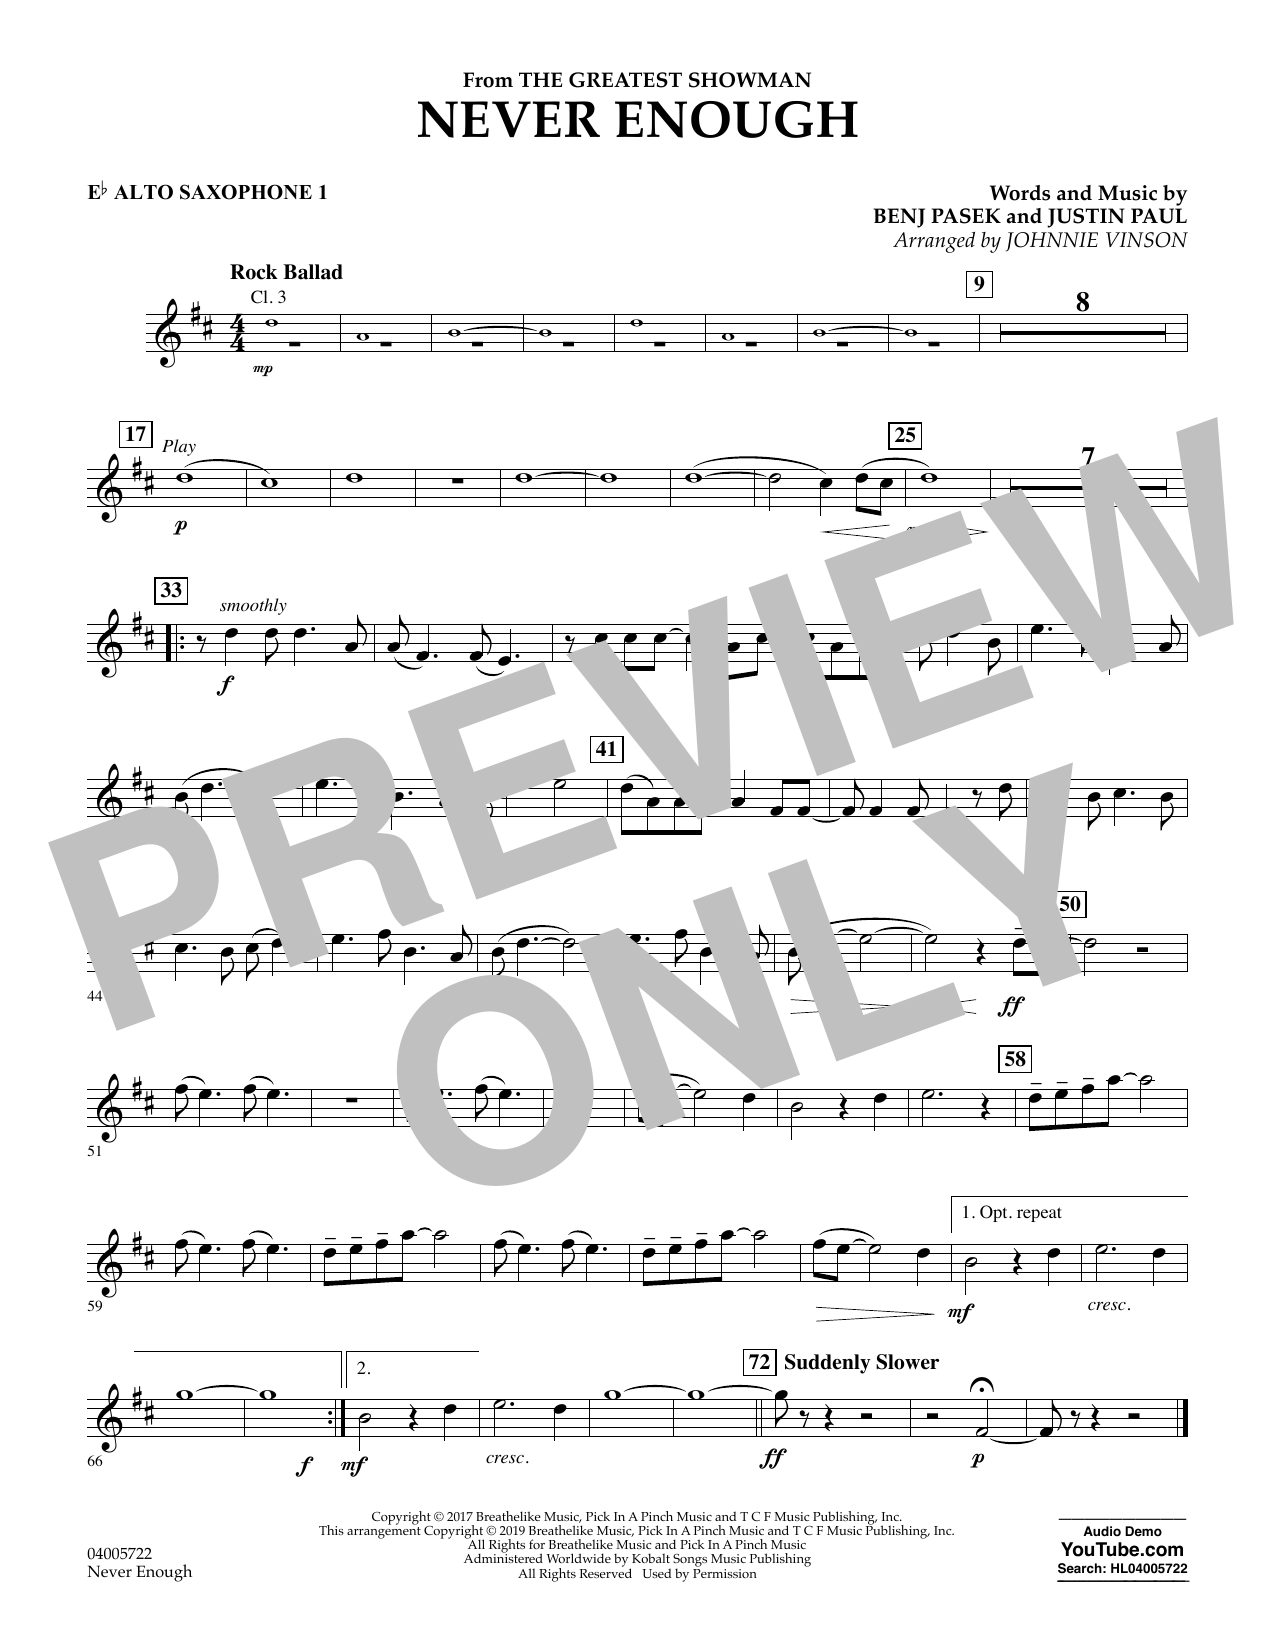 Never Enough (from The Greatest Showman) (arr. Johnnie Vinson) - Eb Alto Saxophone 1 (Concert Band)